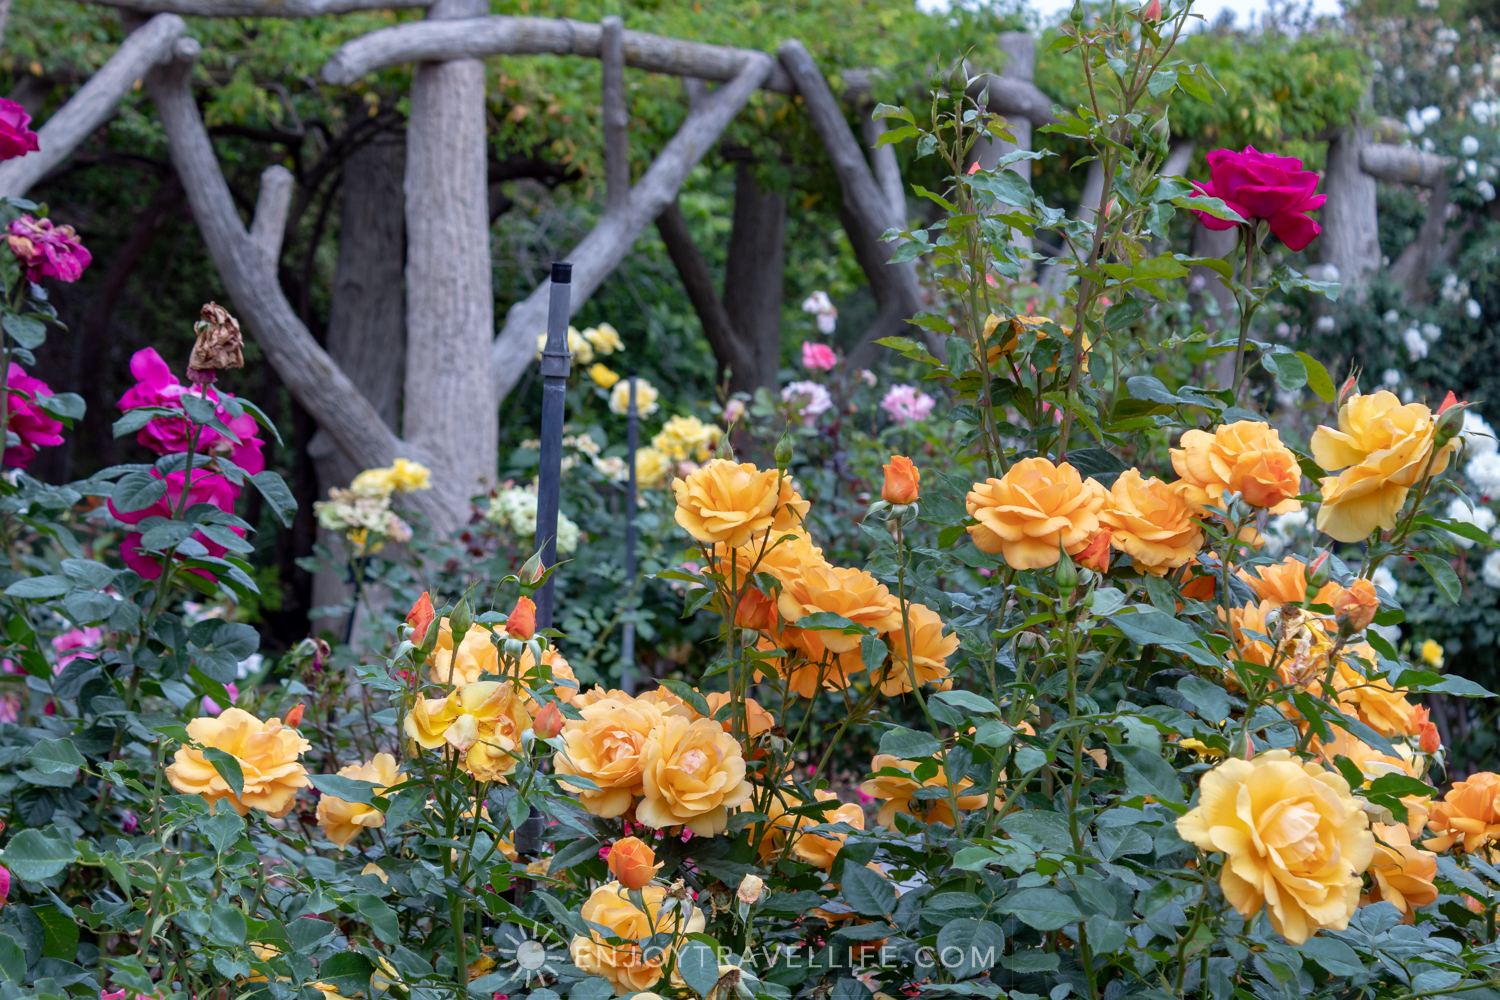 Roses in Bloom and Arbor - The Huntington Rose Garden